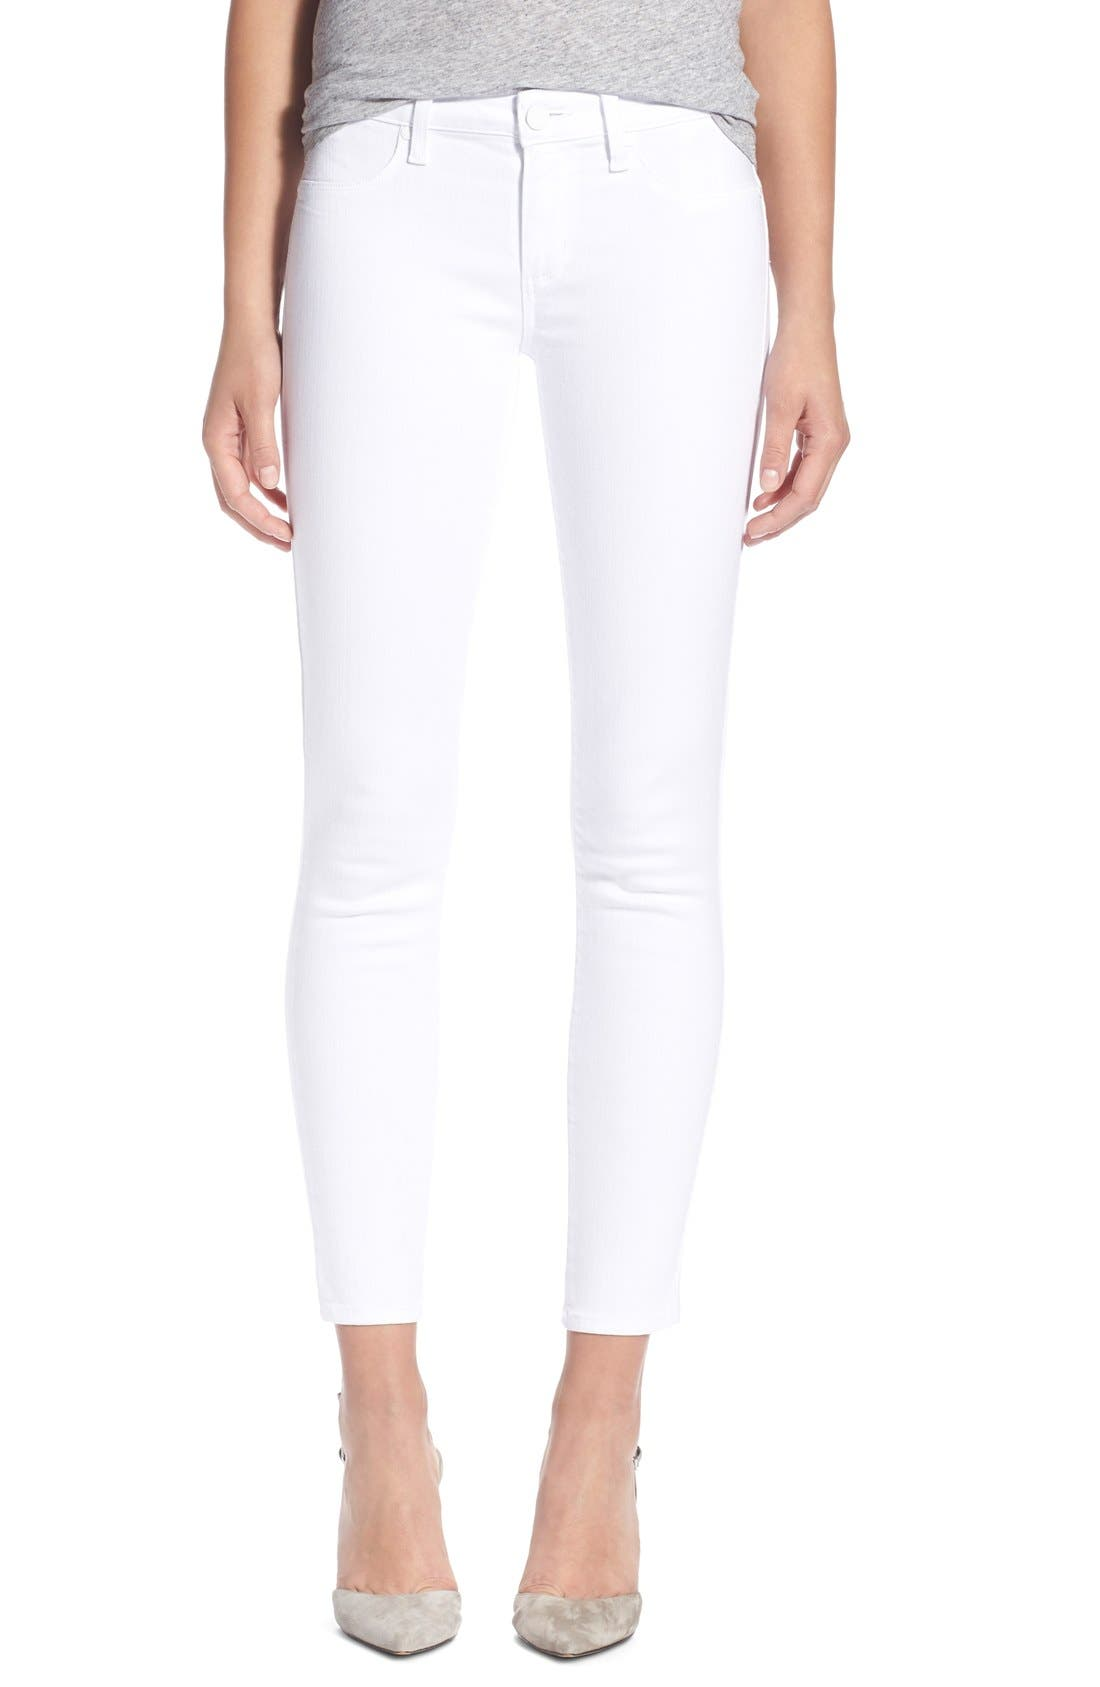 Alternate Image 1 Selected - PAIGE 'Verdugo' Ankle Skinny Jeans (Ultra White)